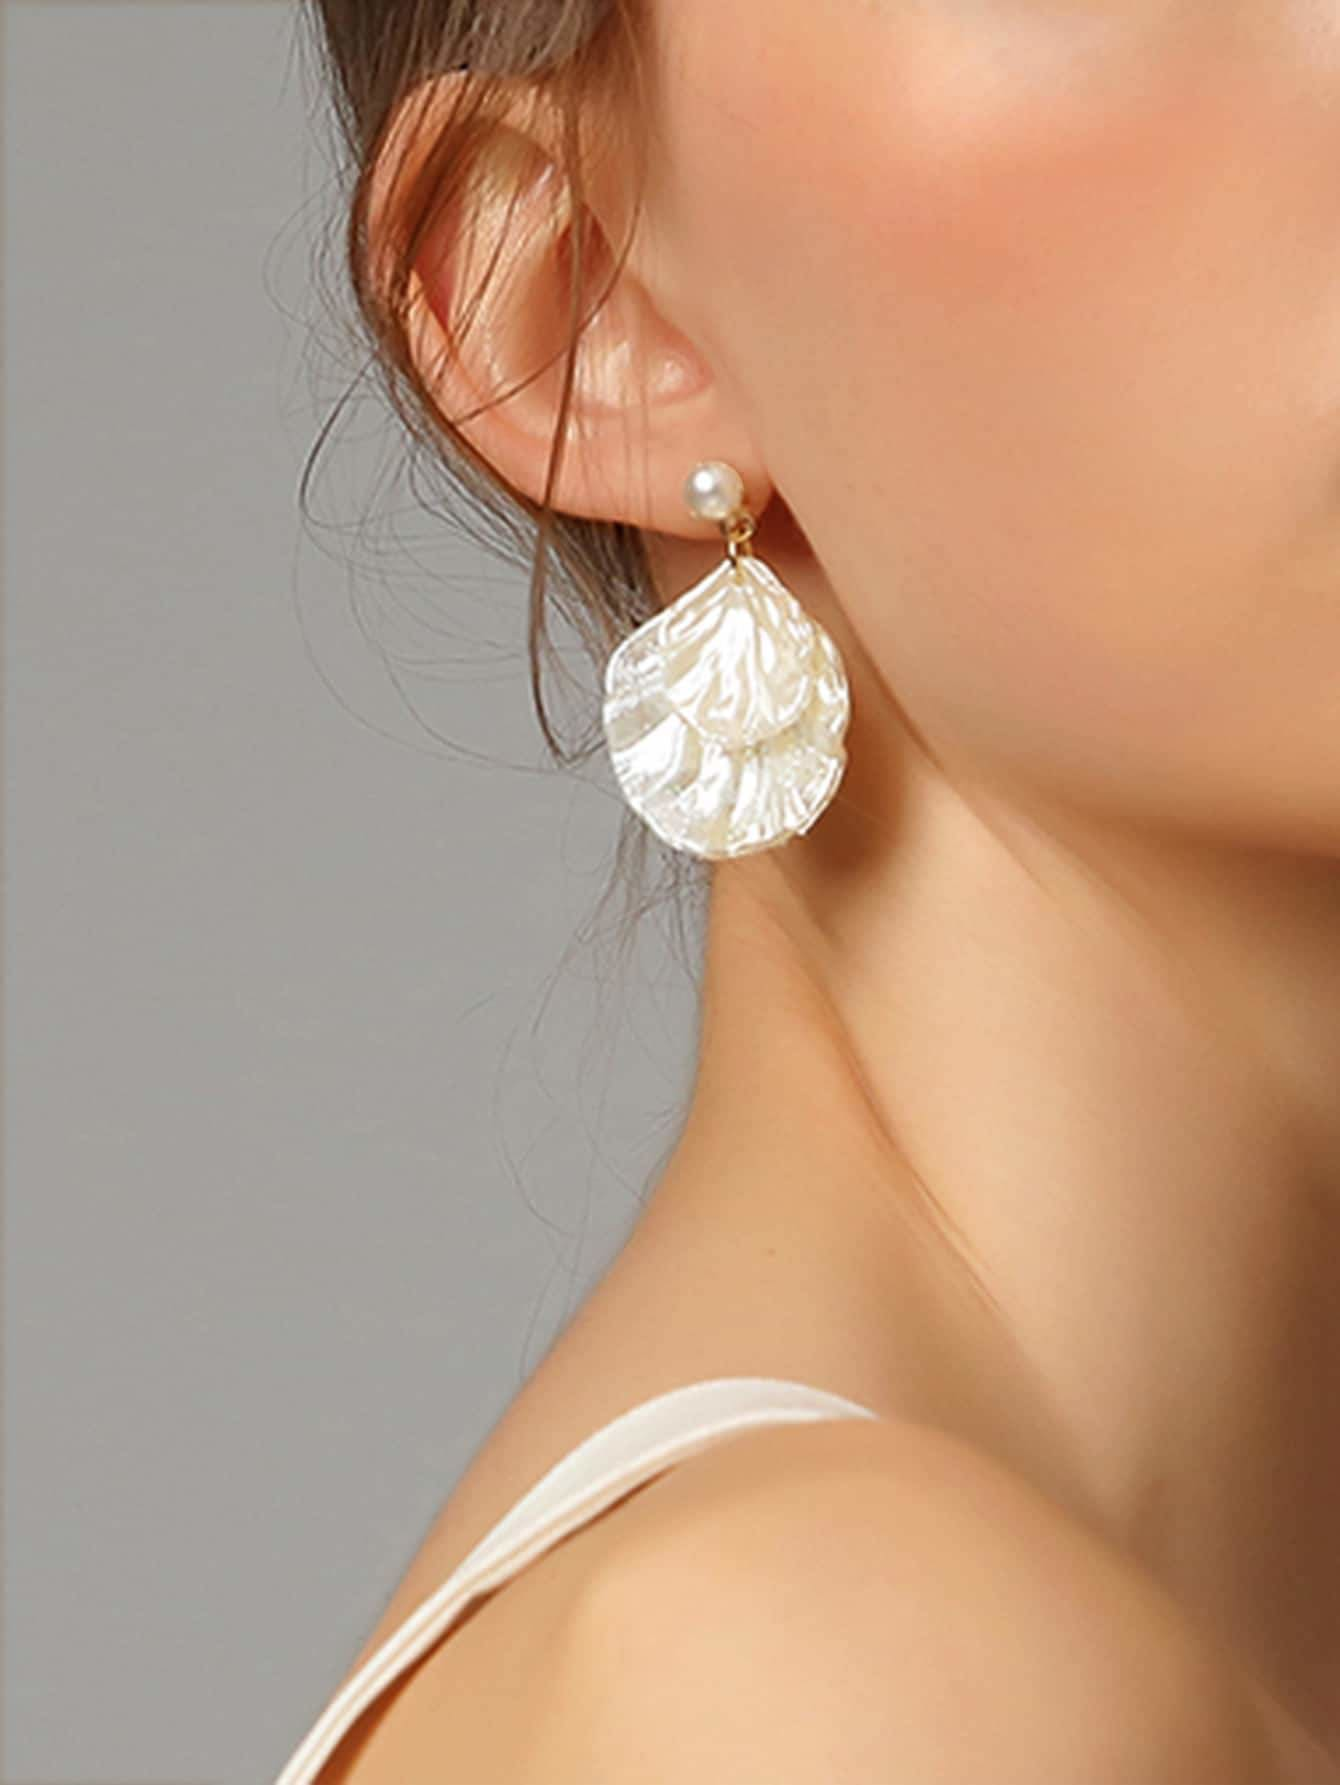 Faux Pearl Shell Shaped Drop Earring 1pair - Earrings